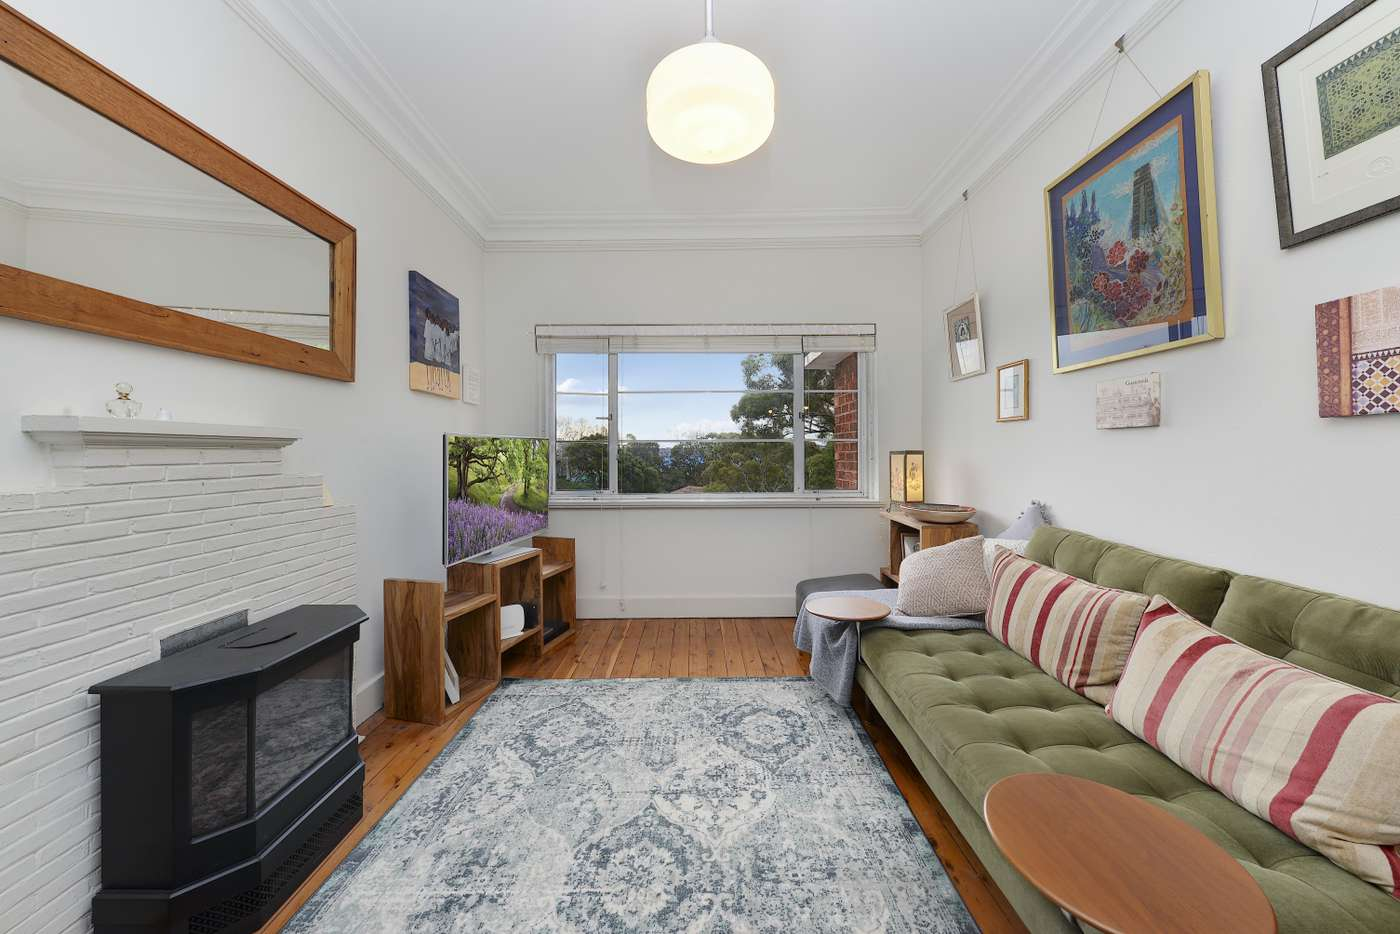 Main view of Homely apartment listing, 11/20 New South Head Road, Edgecliff NSW 2027